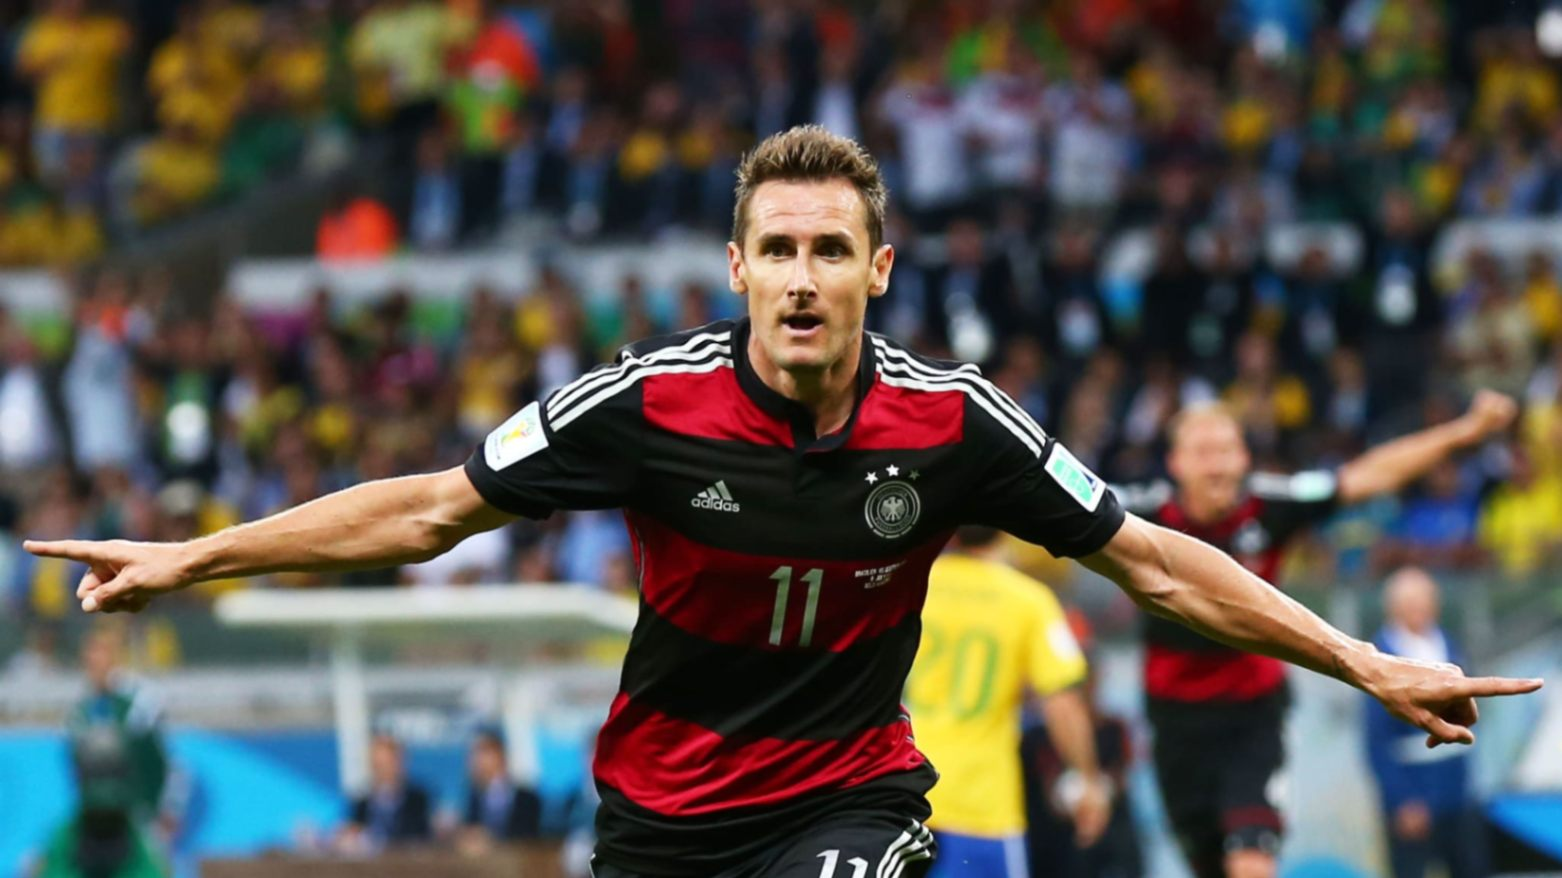 Meet the Idols of the Football World Cup